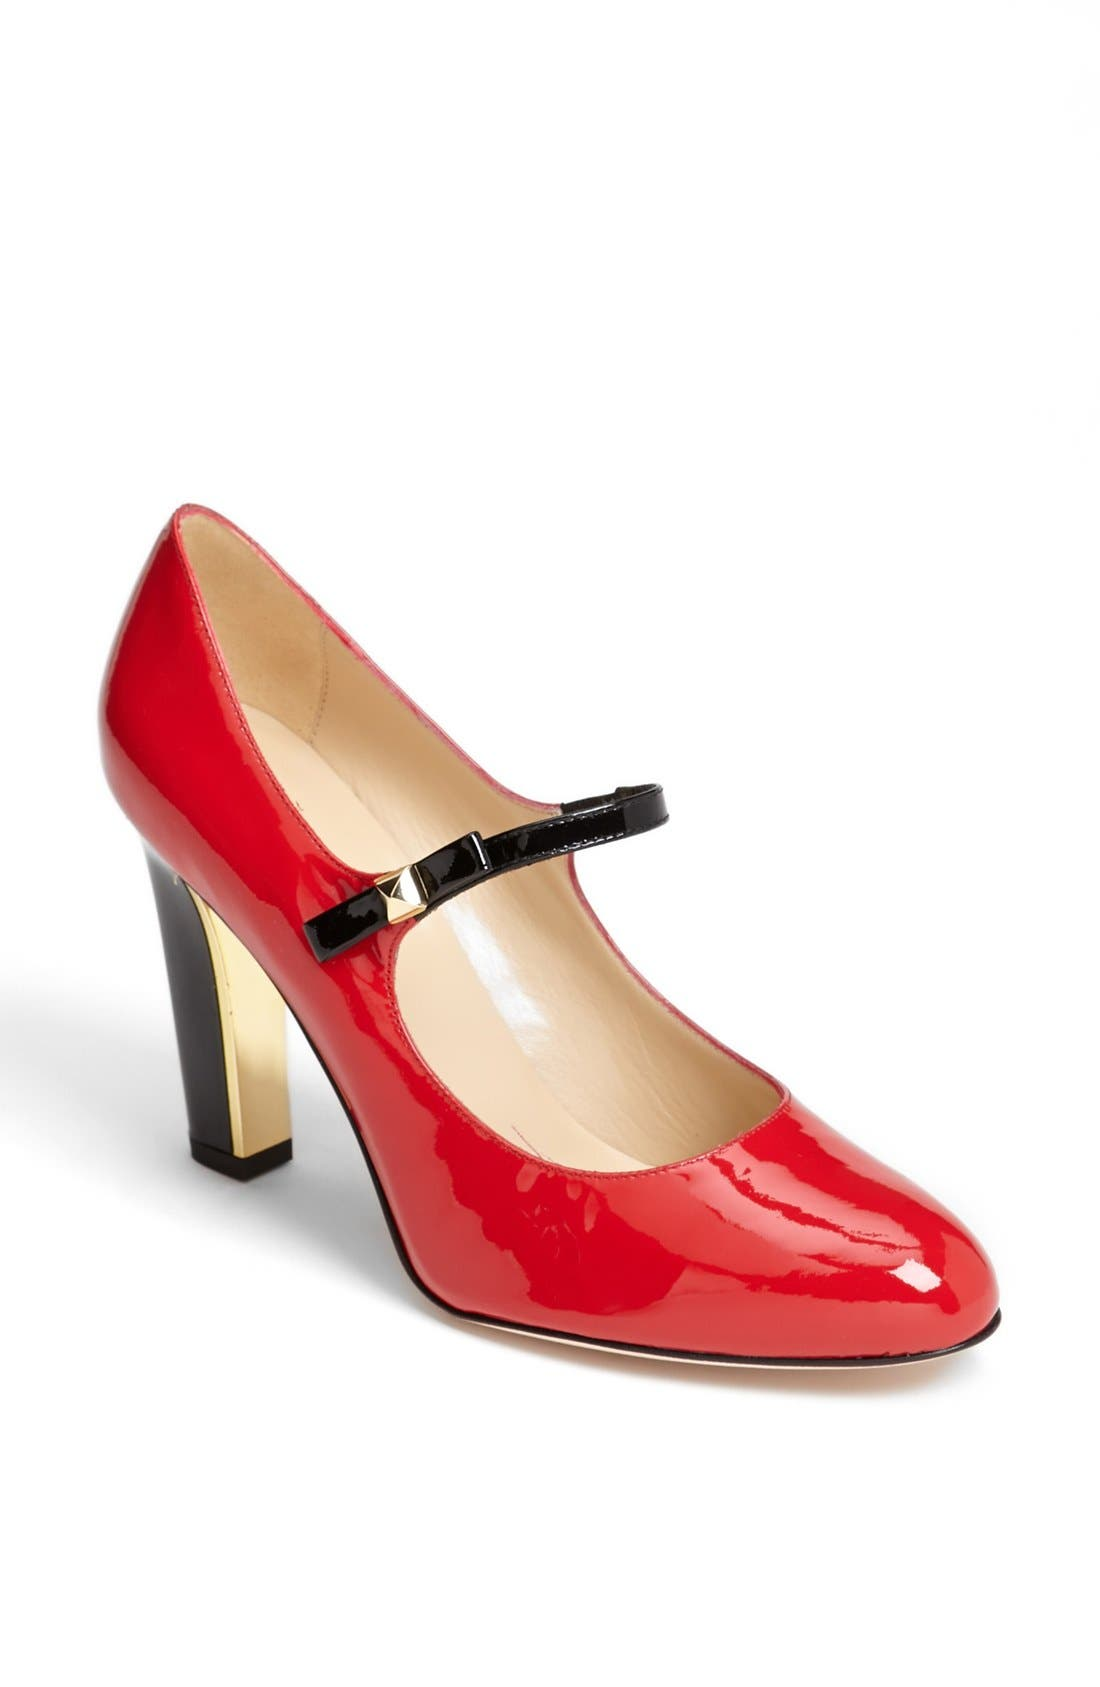 Main Image - kate spade new york 'nuovo' pump